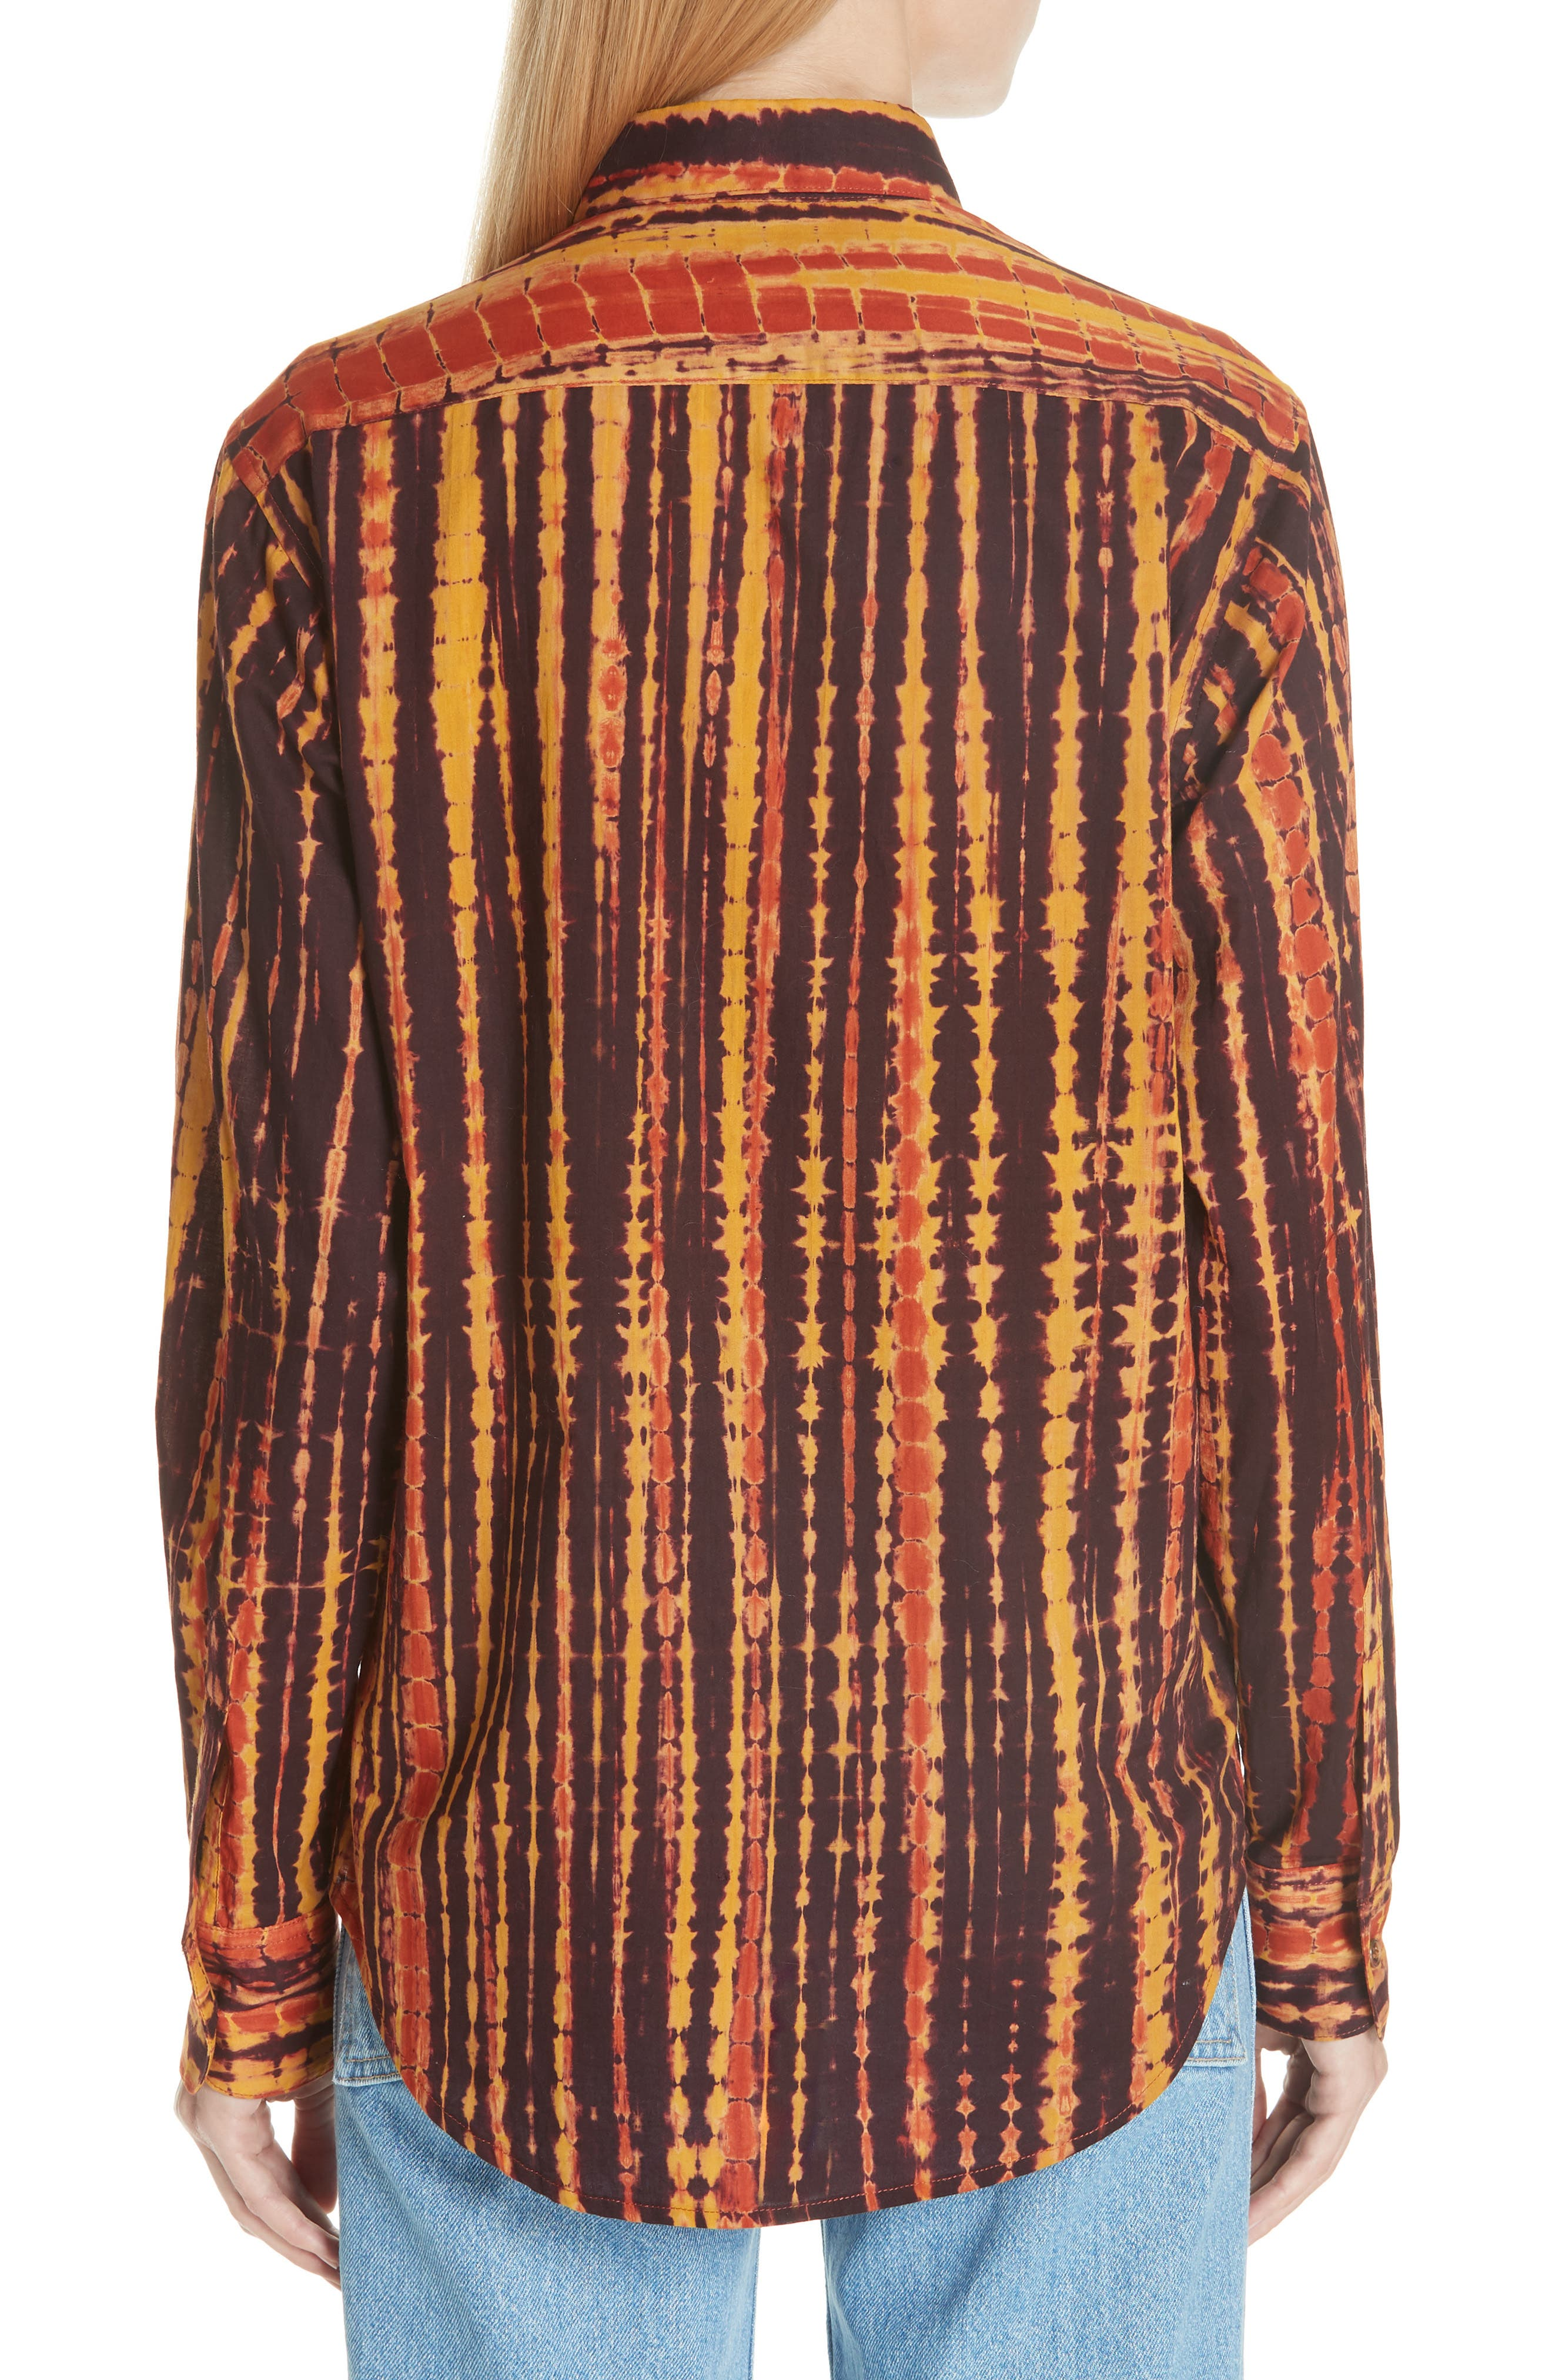 Hand Dyed Cotton Shirt,                             Alternate thumbnail 2, color,                             BY - BROWN AND YELLOW